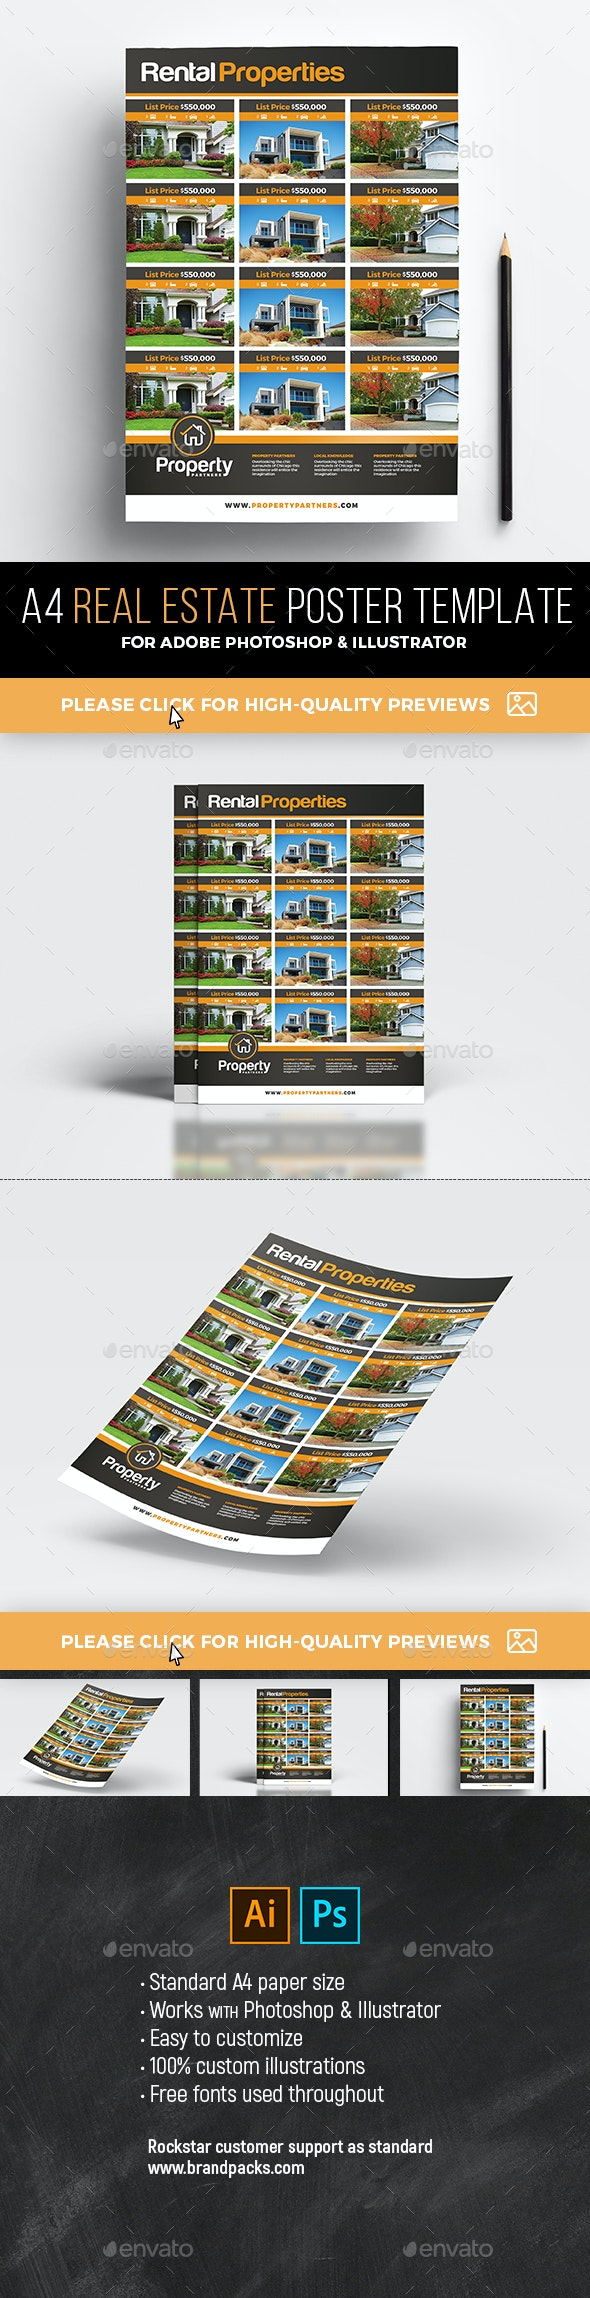 Real Estate Poster / Property Listing Sheet - Commerce Flyers